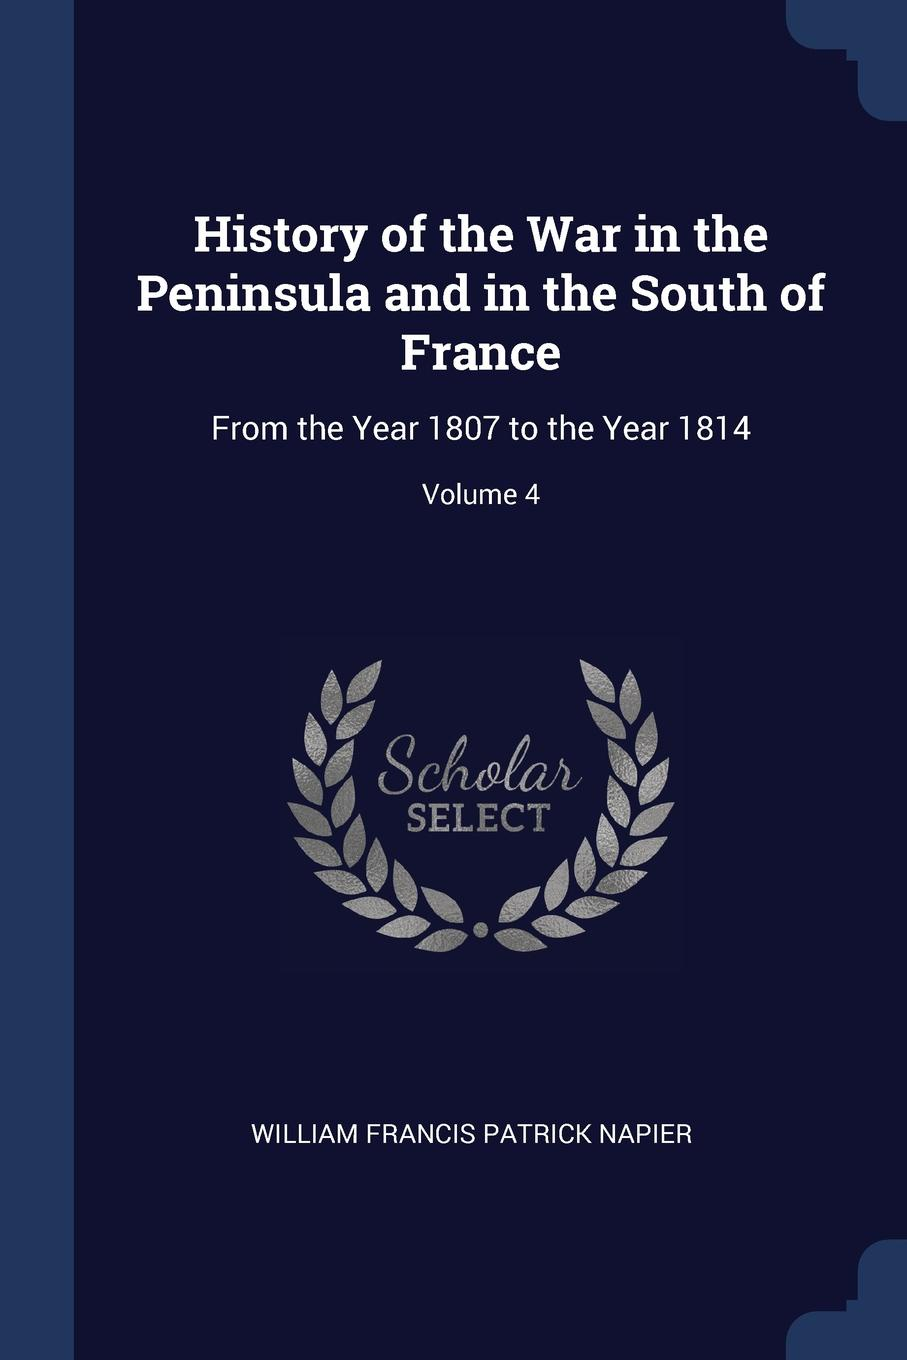 History of the War in the Peninsula and in the South of France. From the Year 1807 to the Year 1814; Volume 4. William Francis Patrick Napier